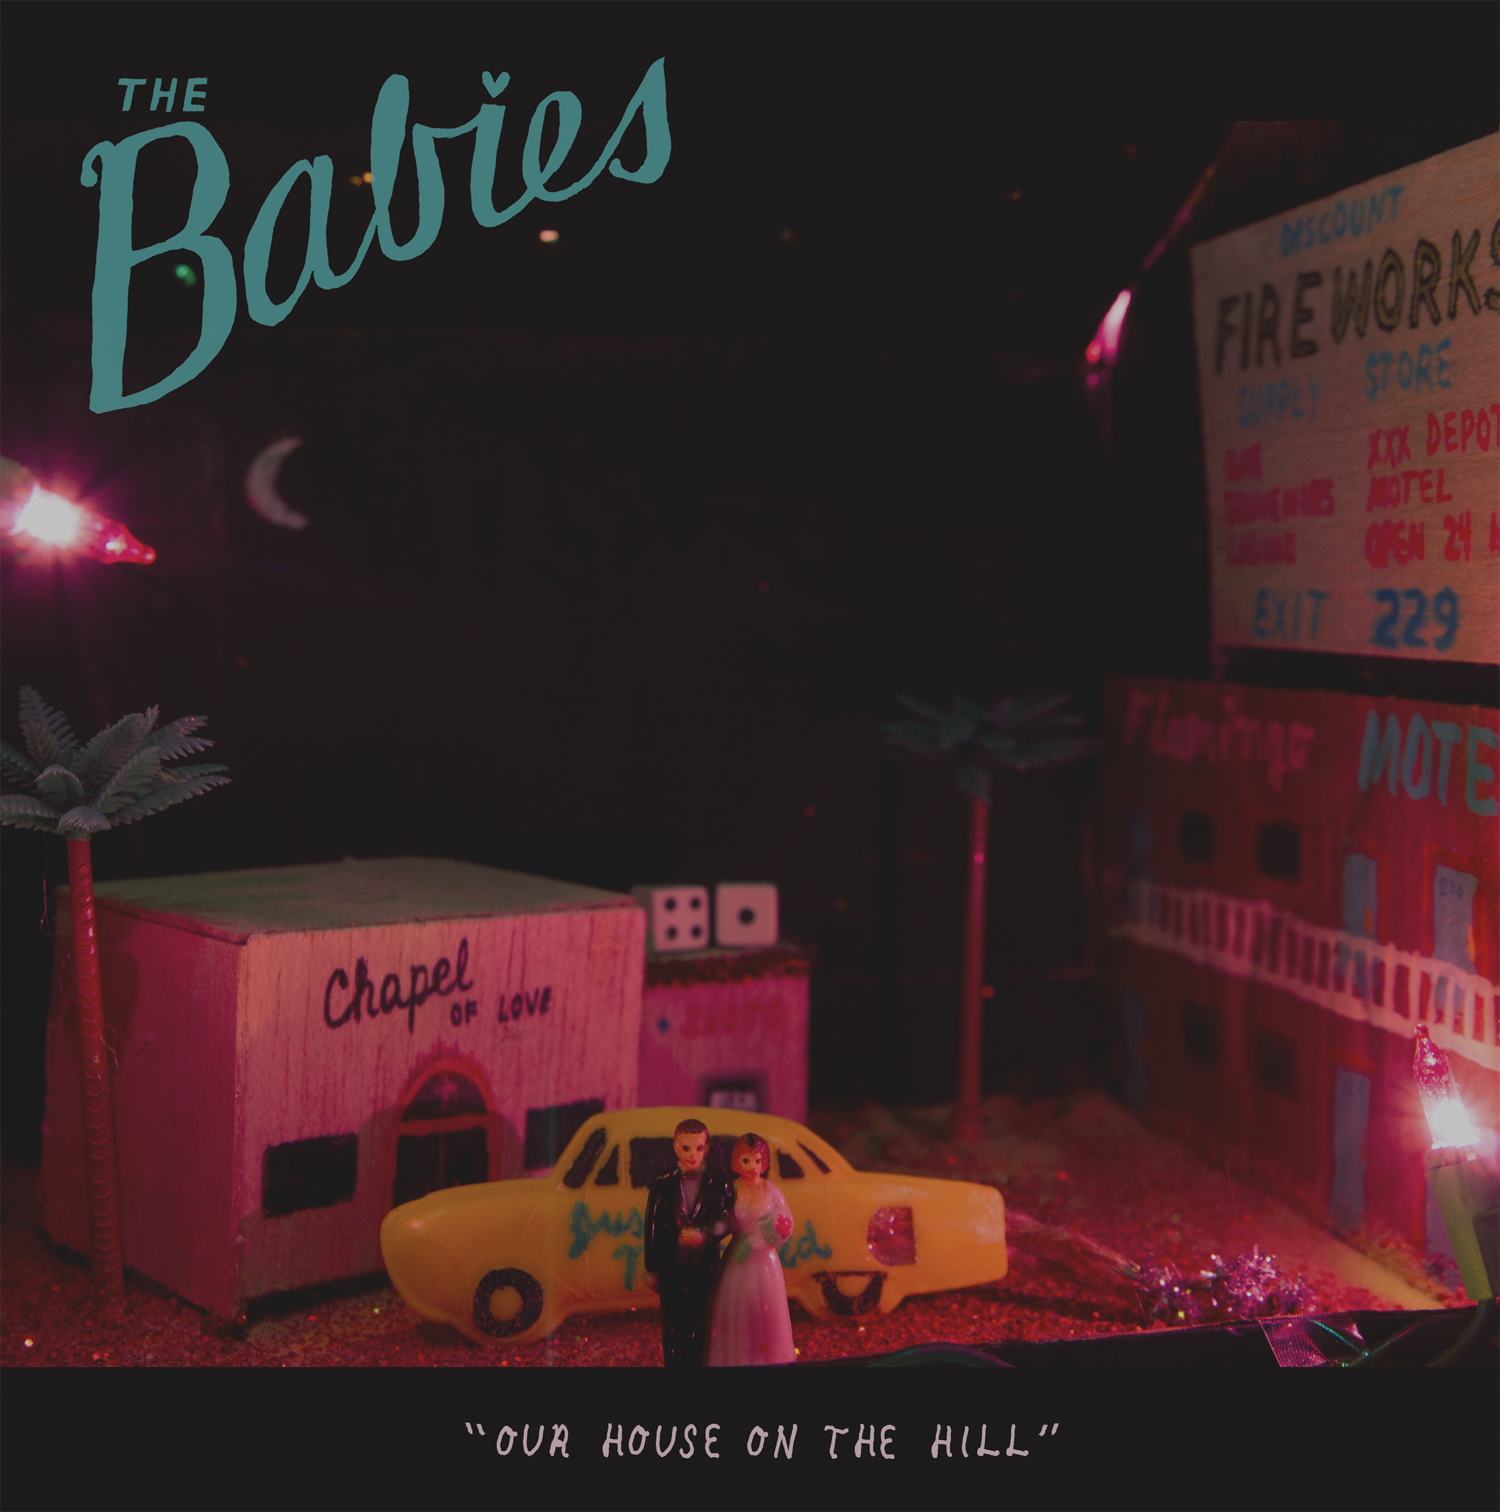 BABIES - OUR HOUSE ON THE HILL